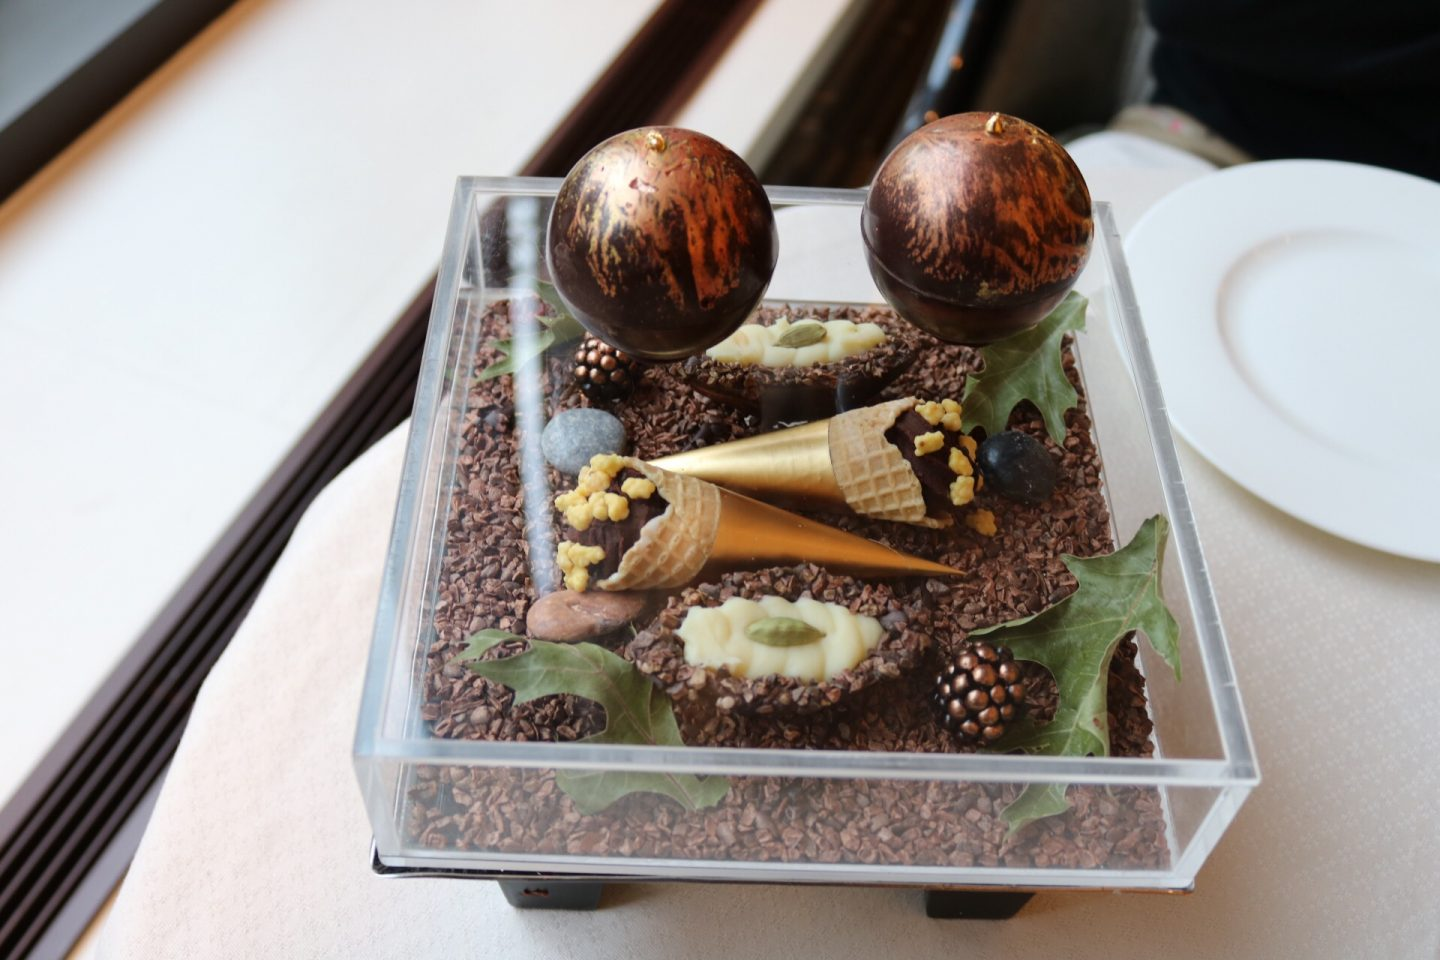 The Chocolate Afternoon Tea at the Intercontinental Park Lane